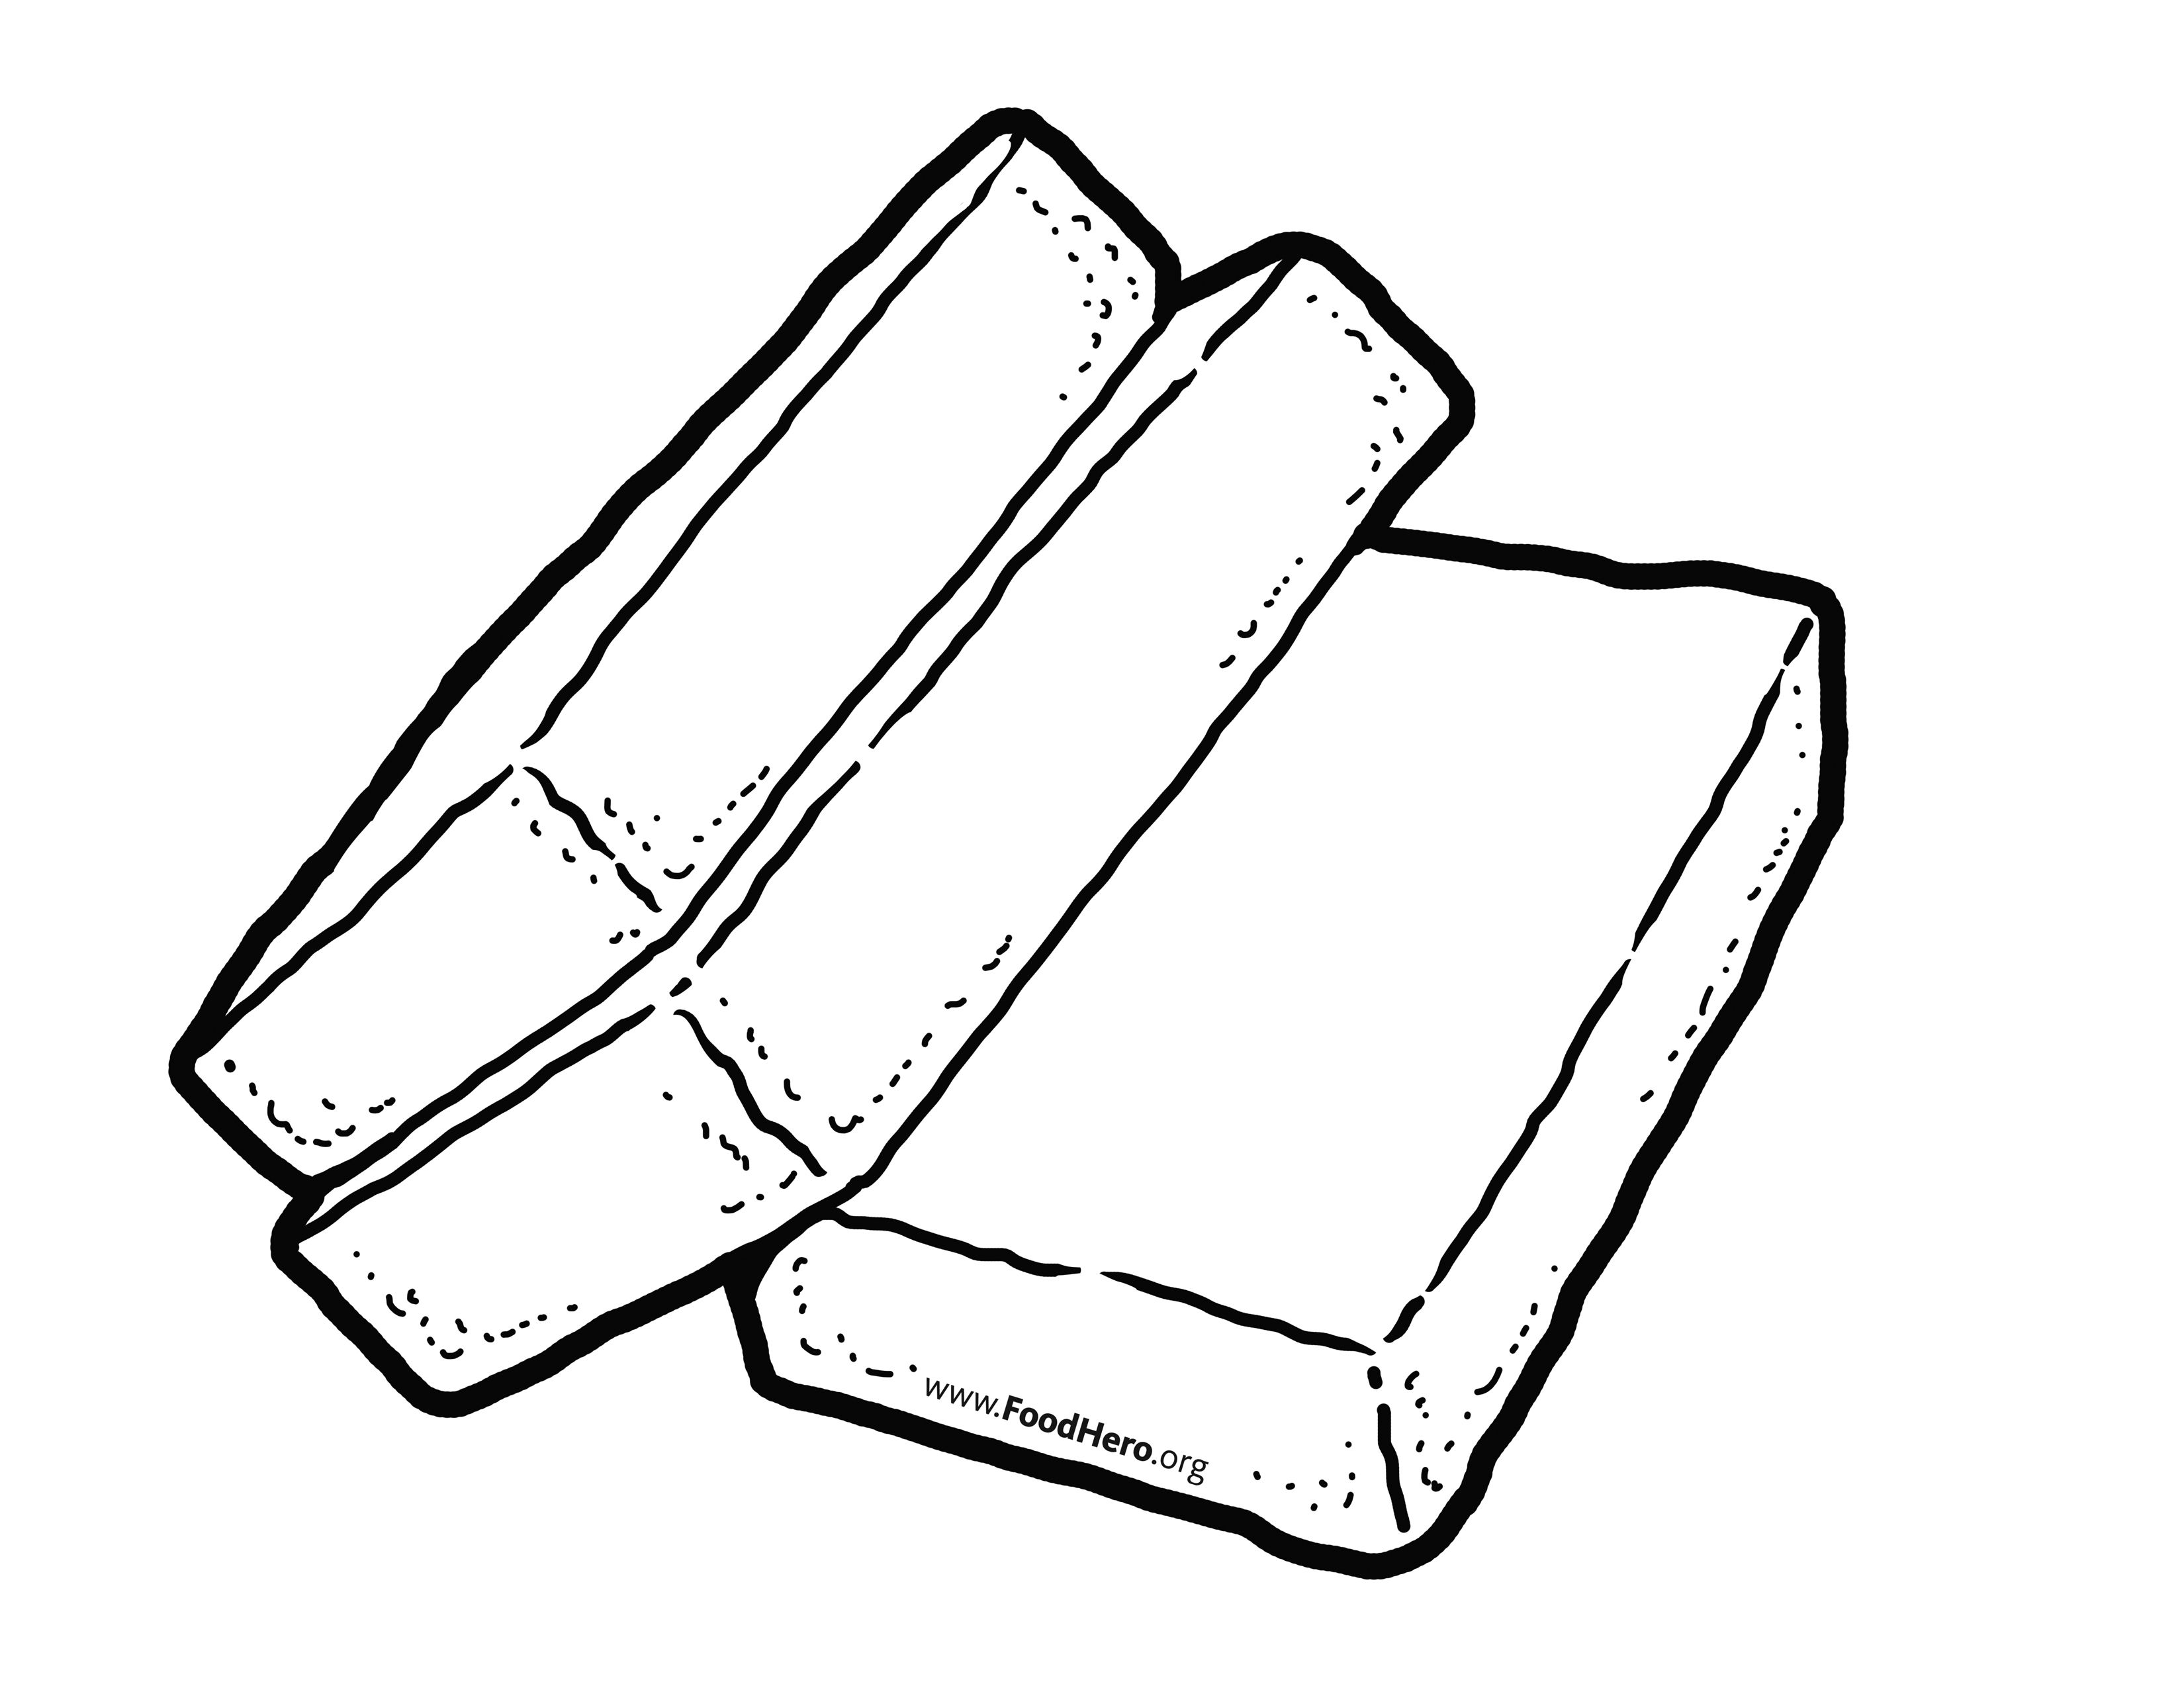 Tofo clipart black and white svg freeuse stock Tofu artwork. Find at foodhero.org. #illustration ... svg freeuse stock